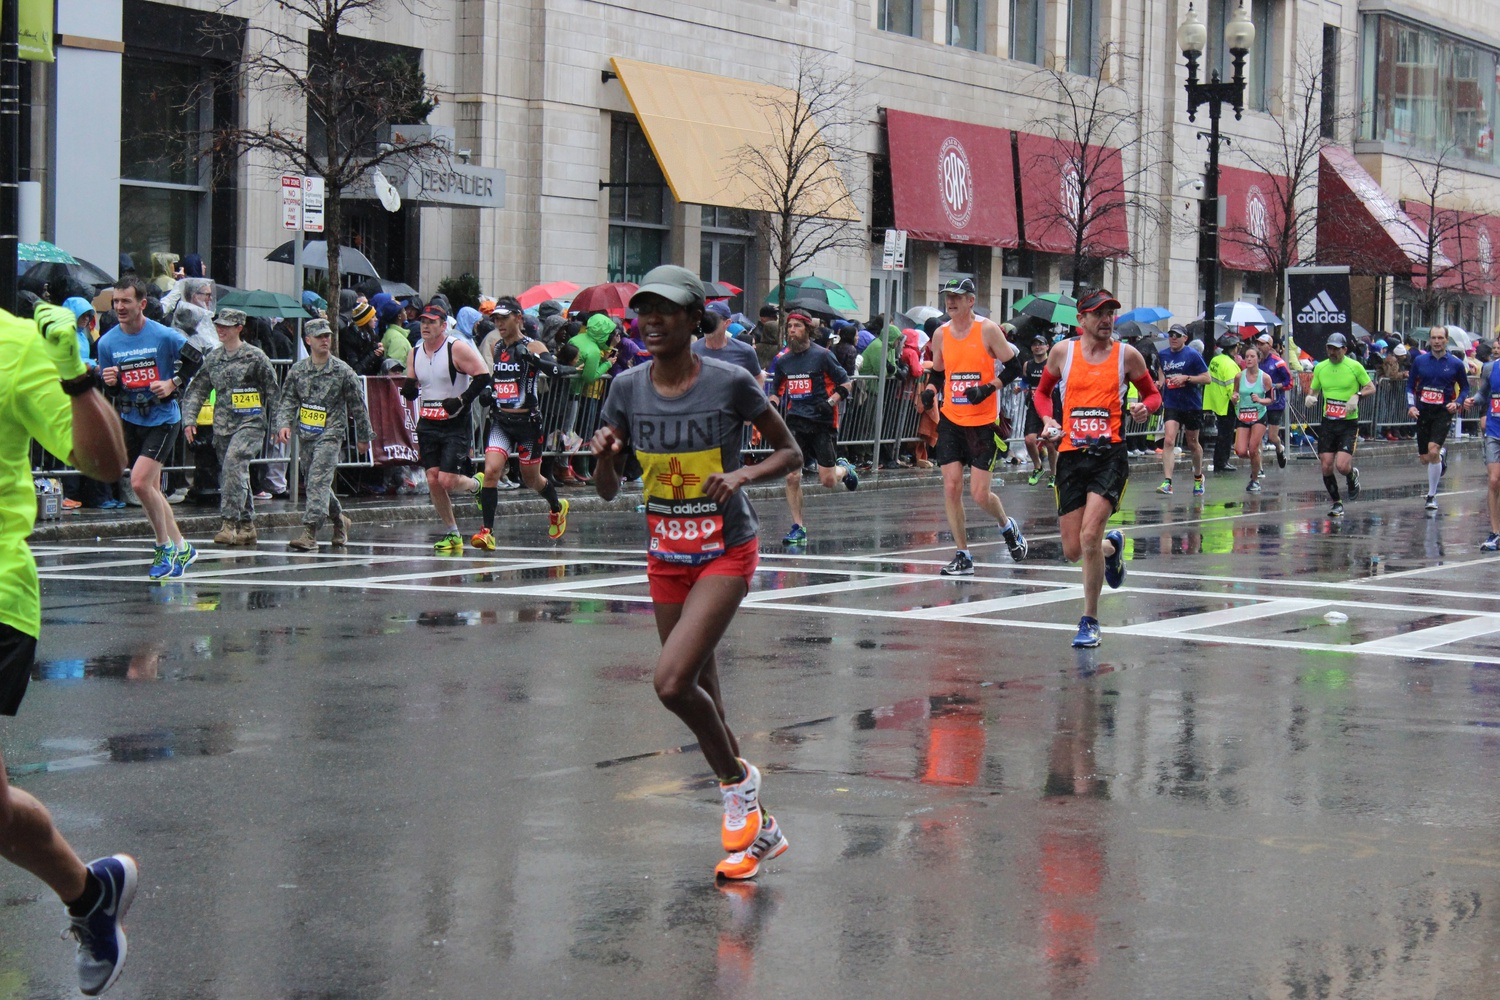 Serena Eley of Los Alamos, New Mexico, approaches the finish line of the 2015 Boston Marathon.